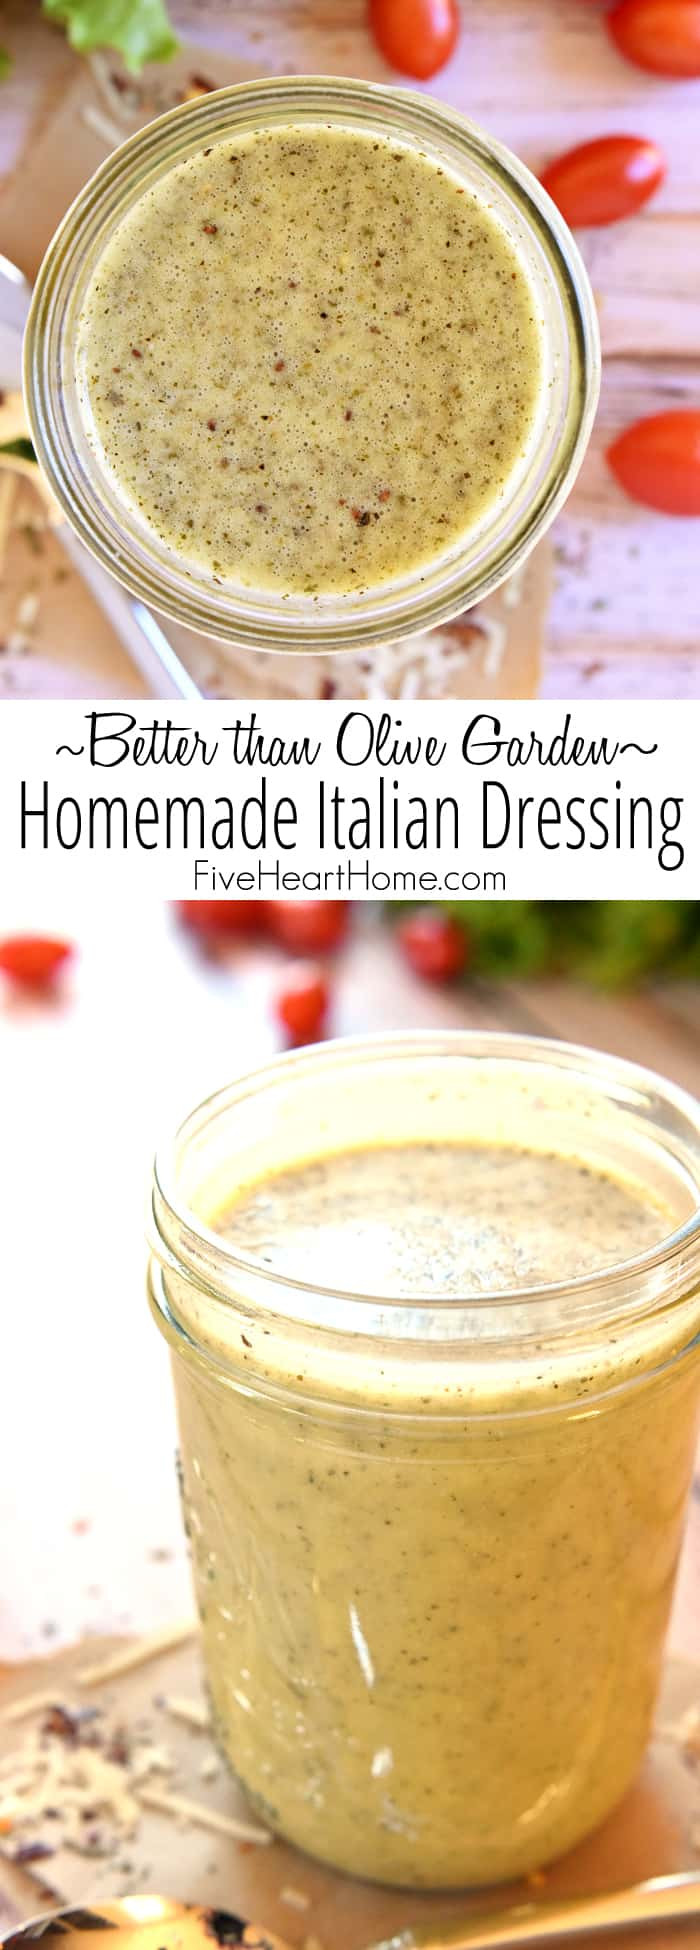 Best ideas about DIY Italian Dressing . Save or Pin Homemade Italian Dressing Now.